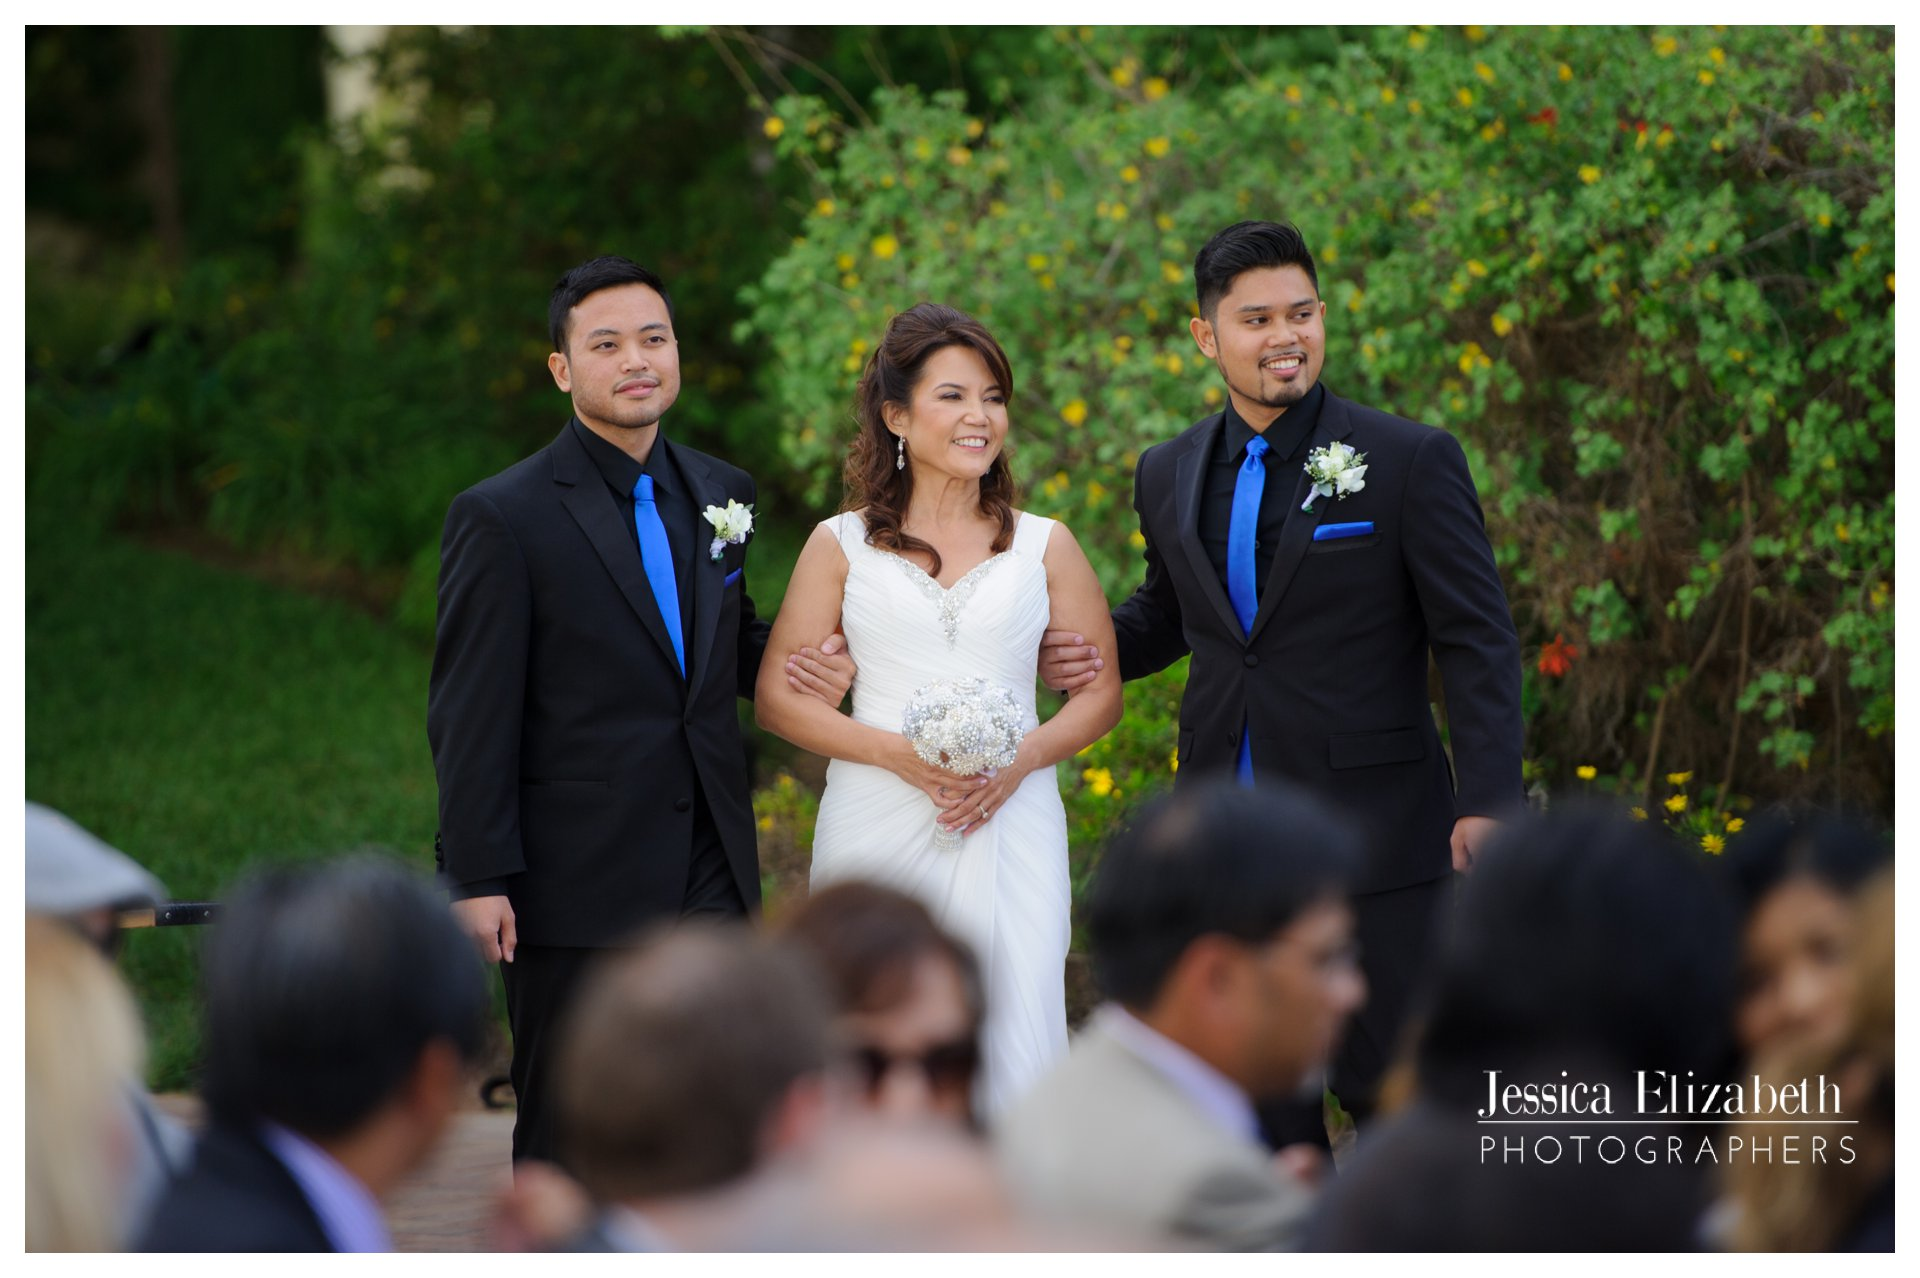 08-Terranea-Palos-Verdes-Wedding-Photography-by-Jessica-Elizabeth-w.jpg